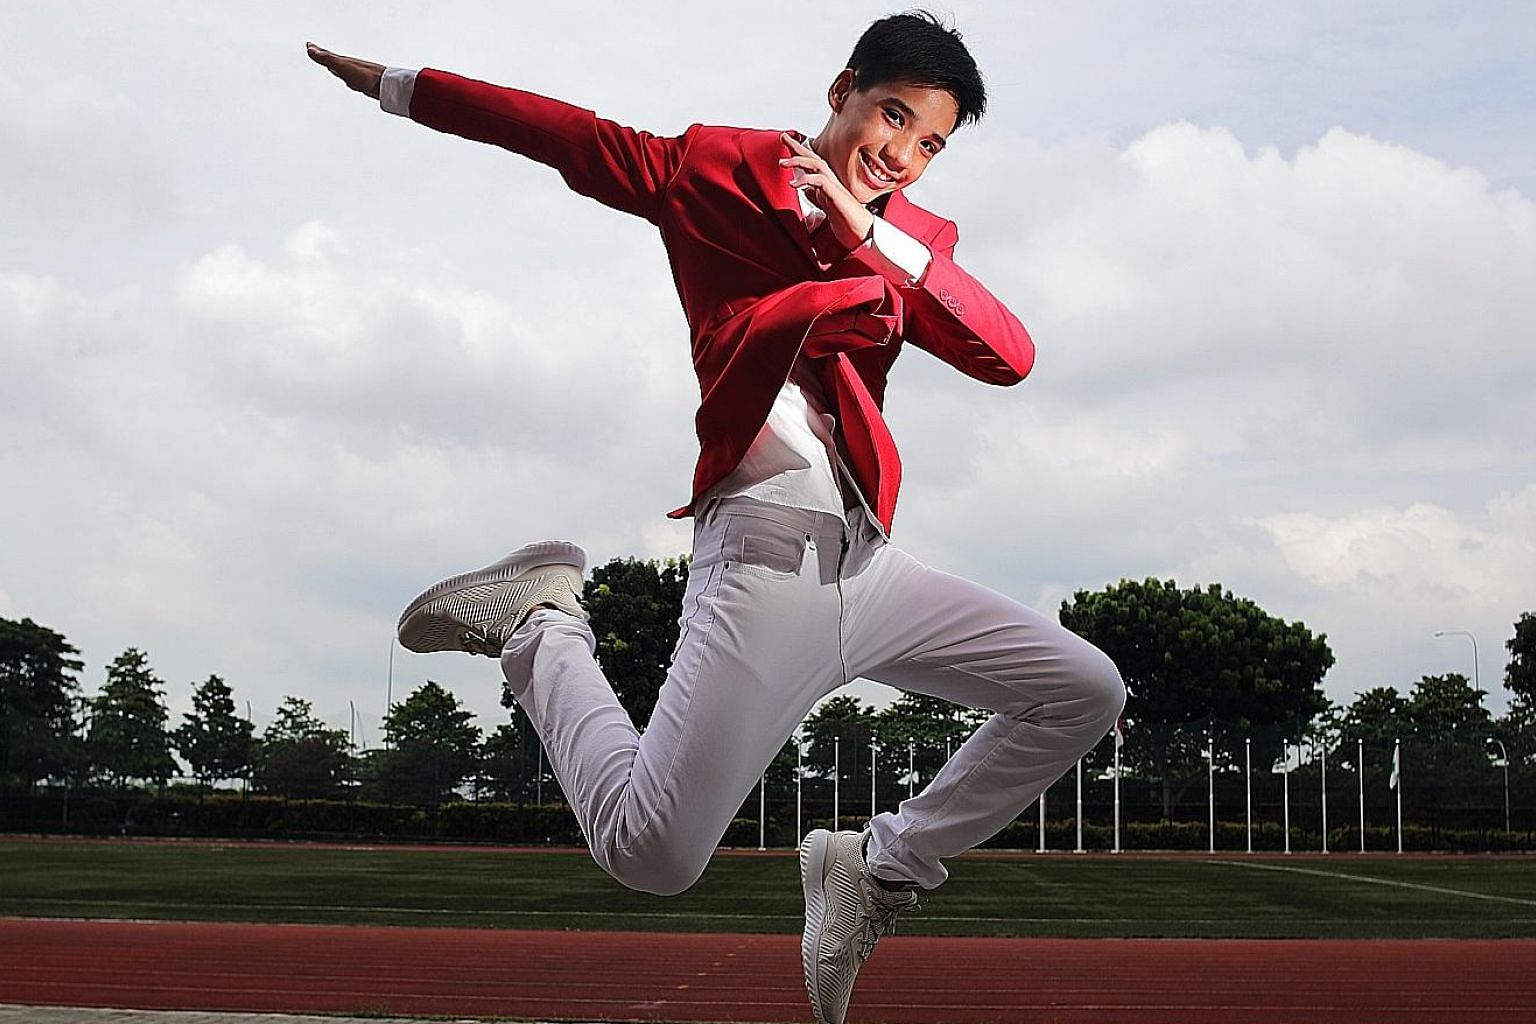 Track and field gave Tertius Zhuo an avenue to build his confidence. He is grateful for the scholarship as it partly eases his single father's expenses in raising four children.